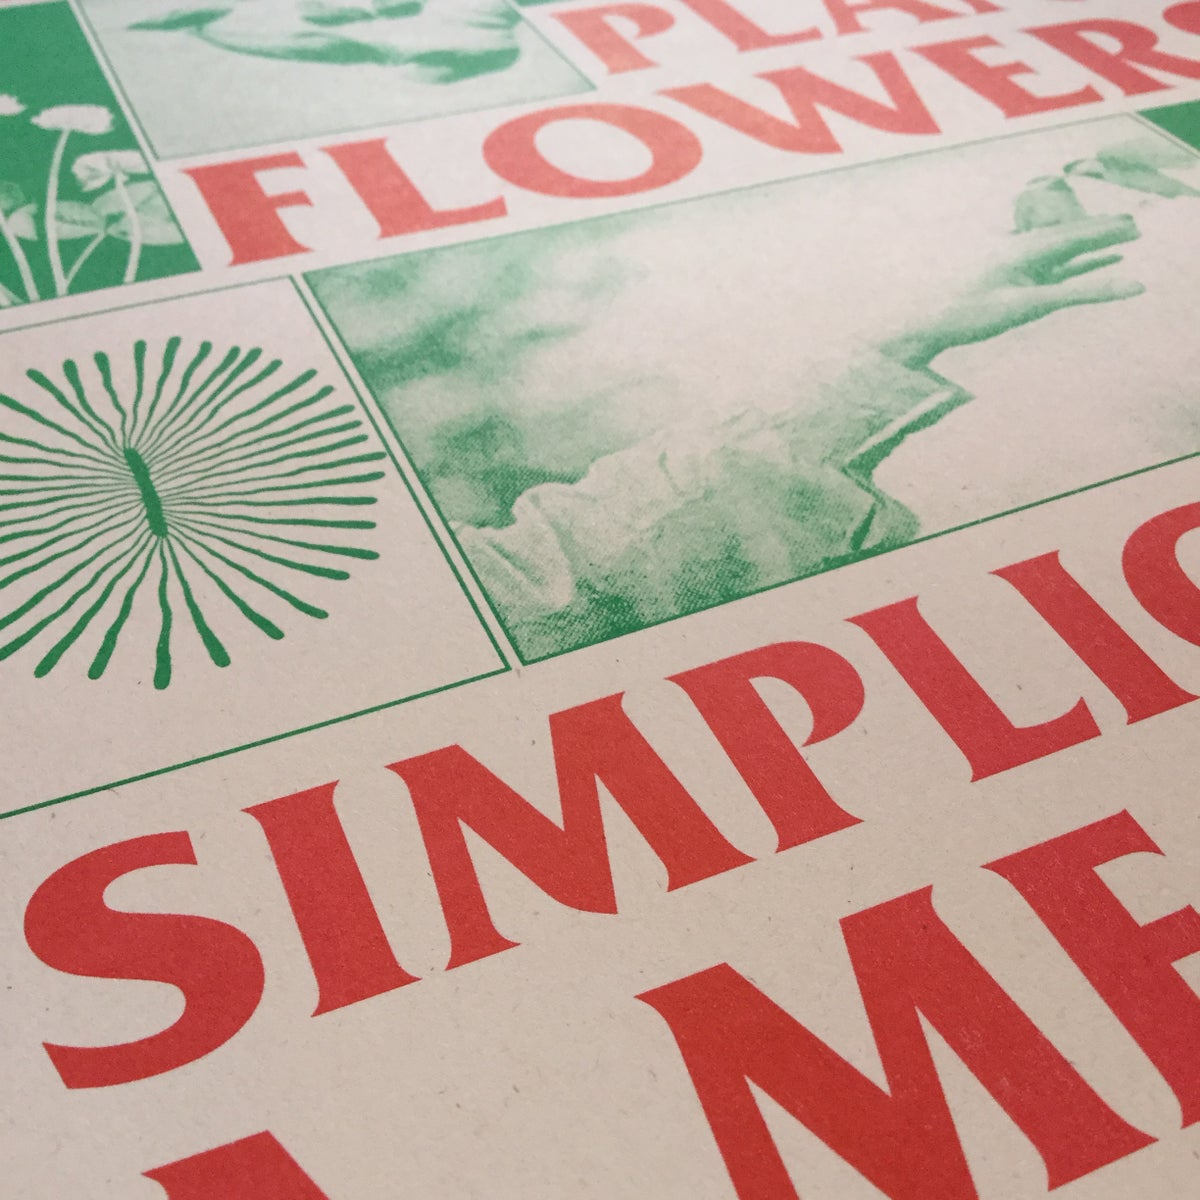 Image of Simplicity As A Means of Resistance A3 riso print